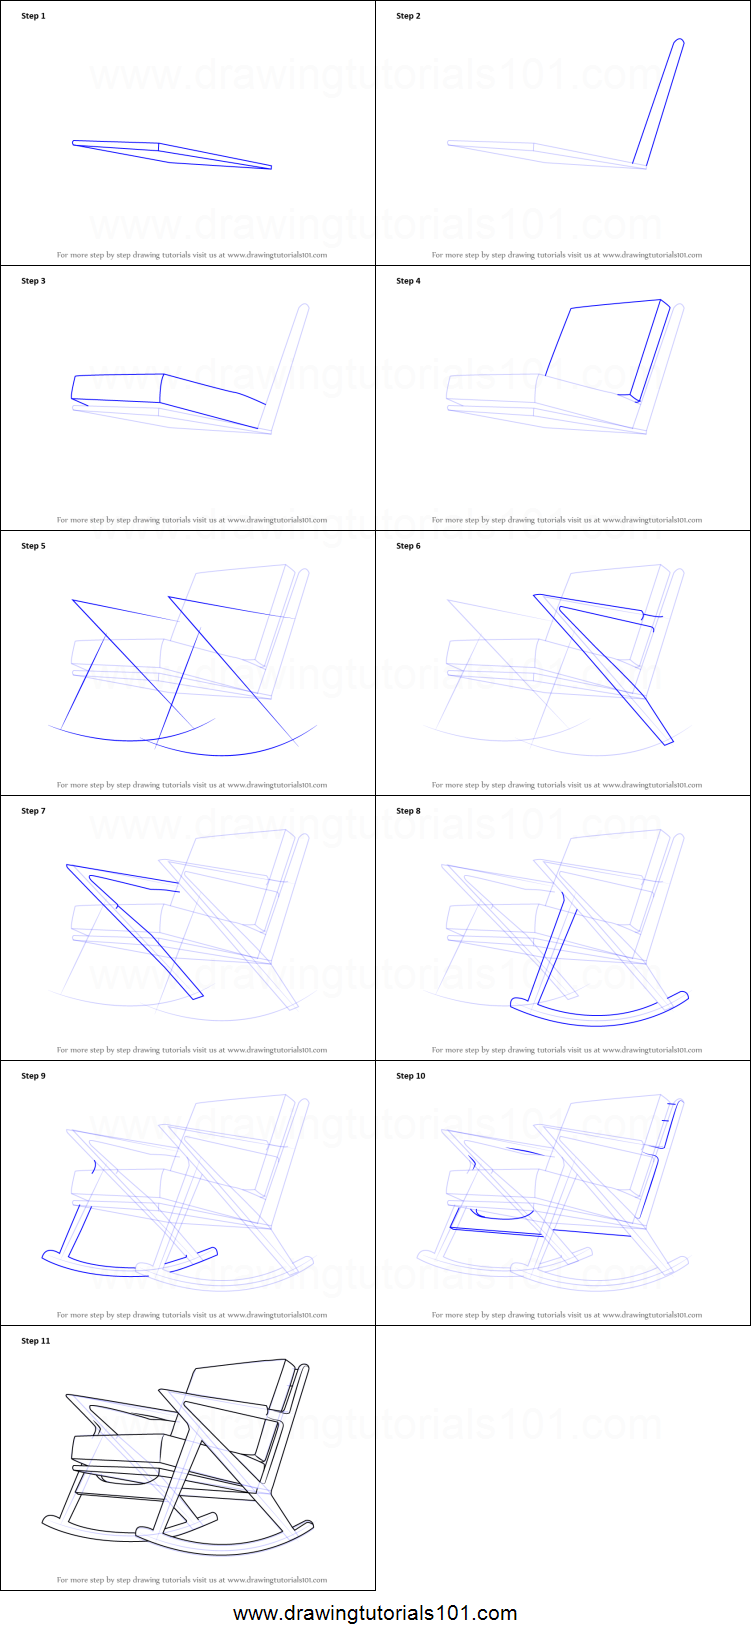 How To Draw Rocking Chair Printable Step By Step Drawing Sheet Drawingtutorials101 Com Drawing Sheet Rocking Chair Chair Drawing